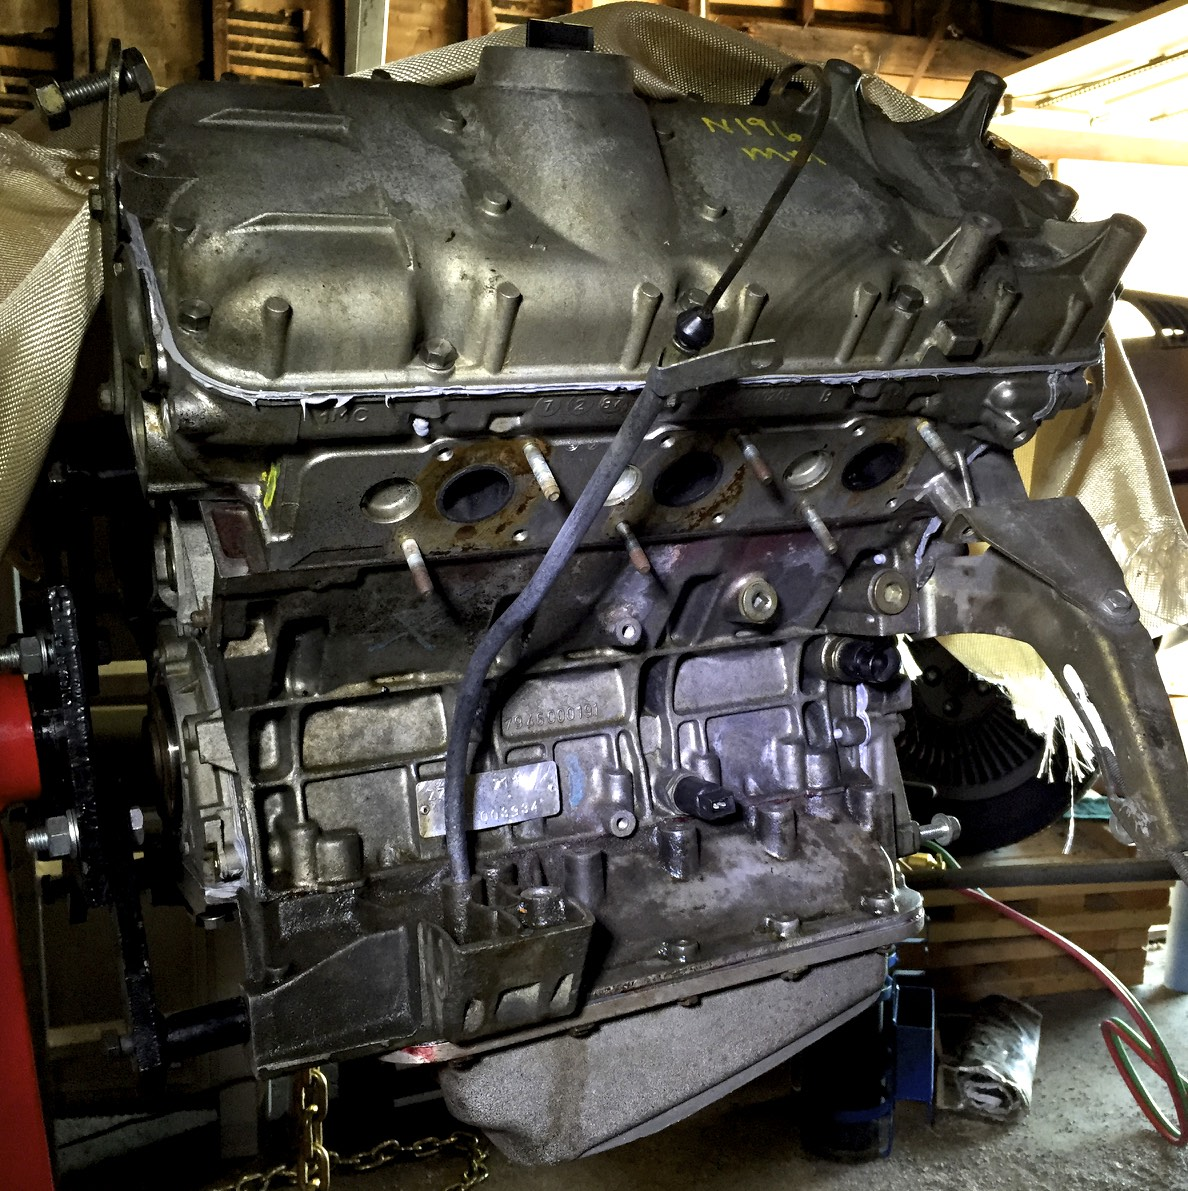 The engine dipstick reinstalled in the lower crankcase.